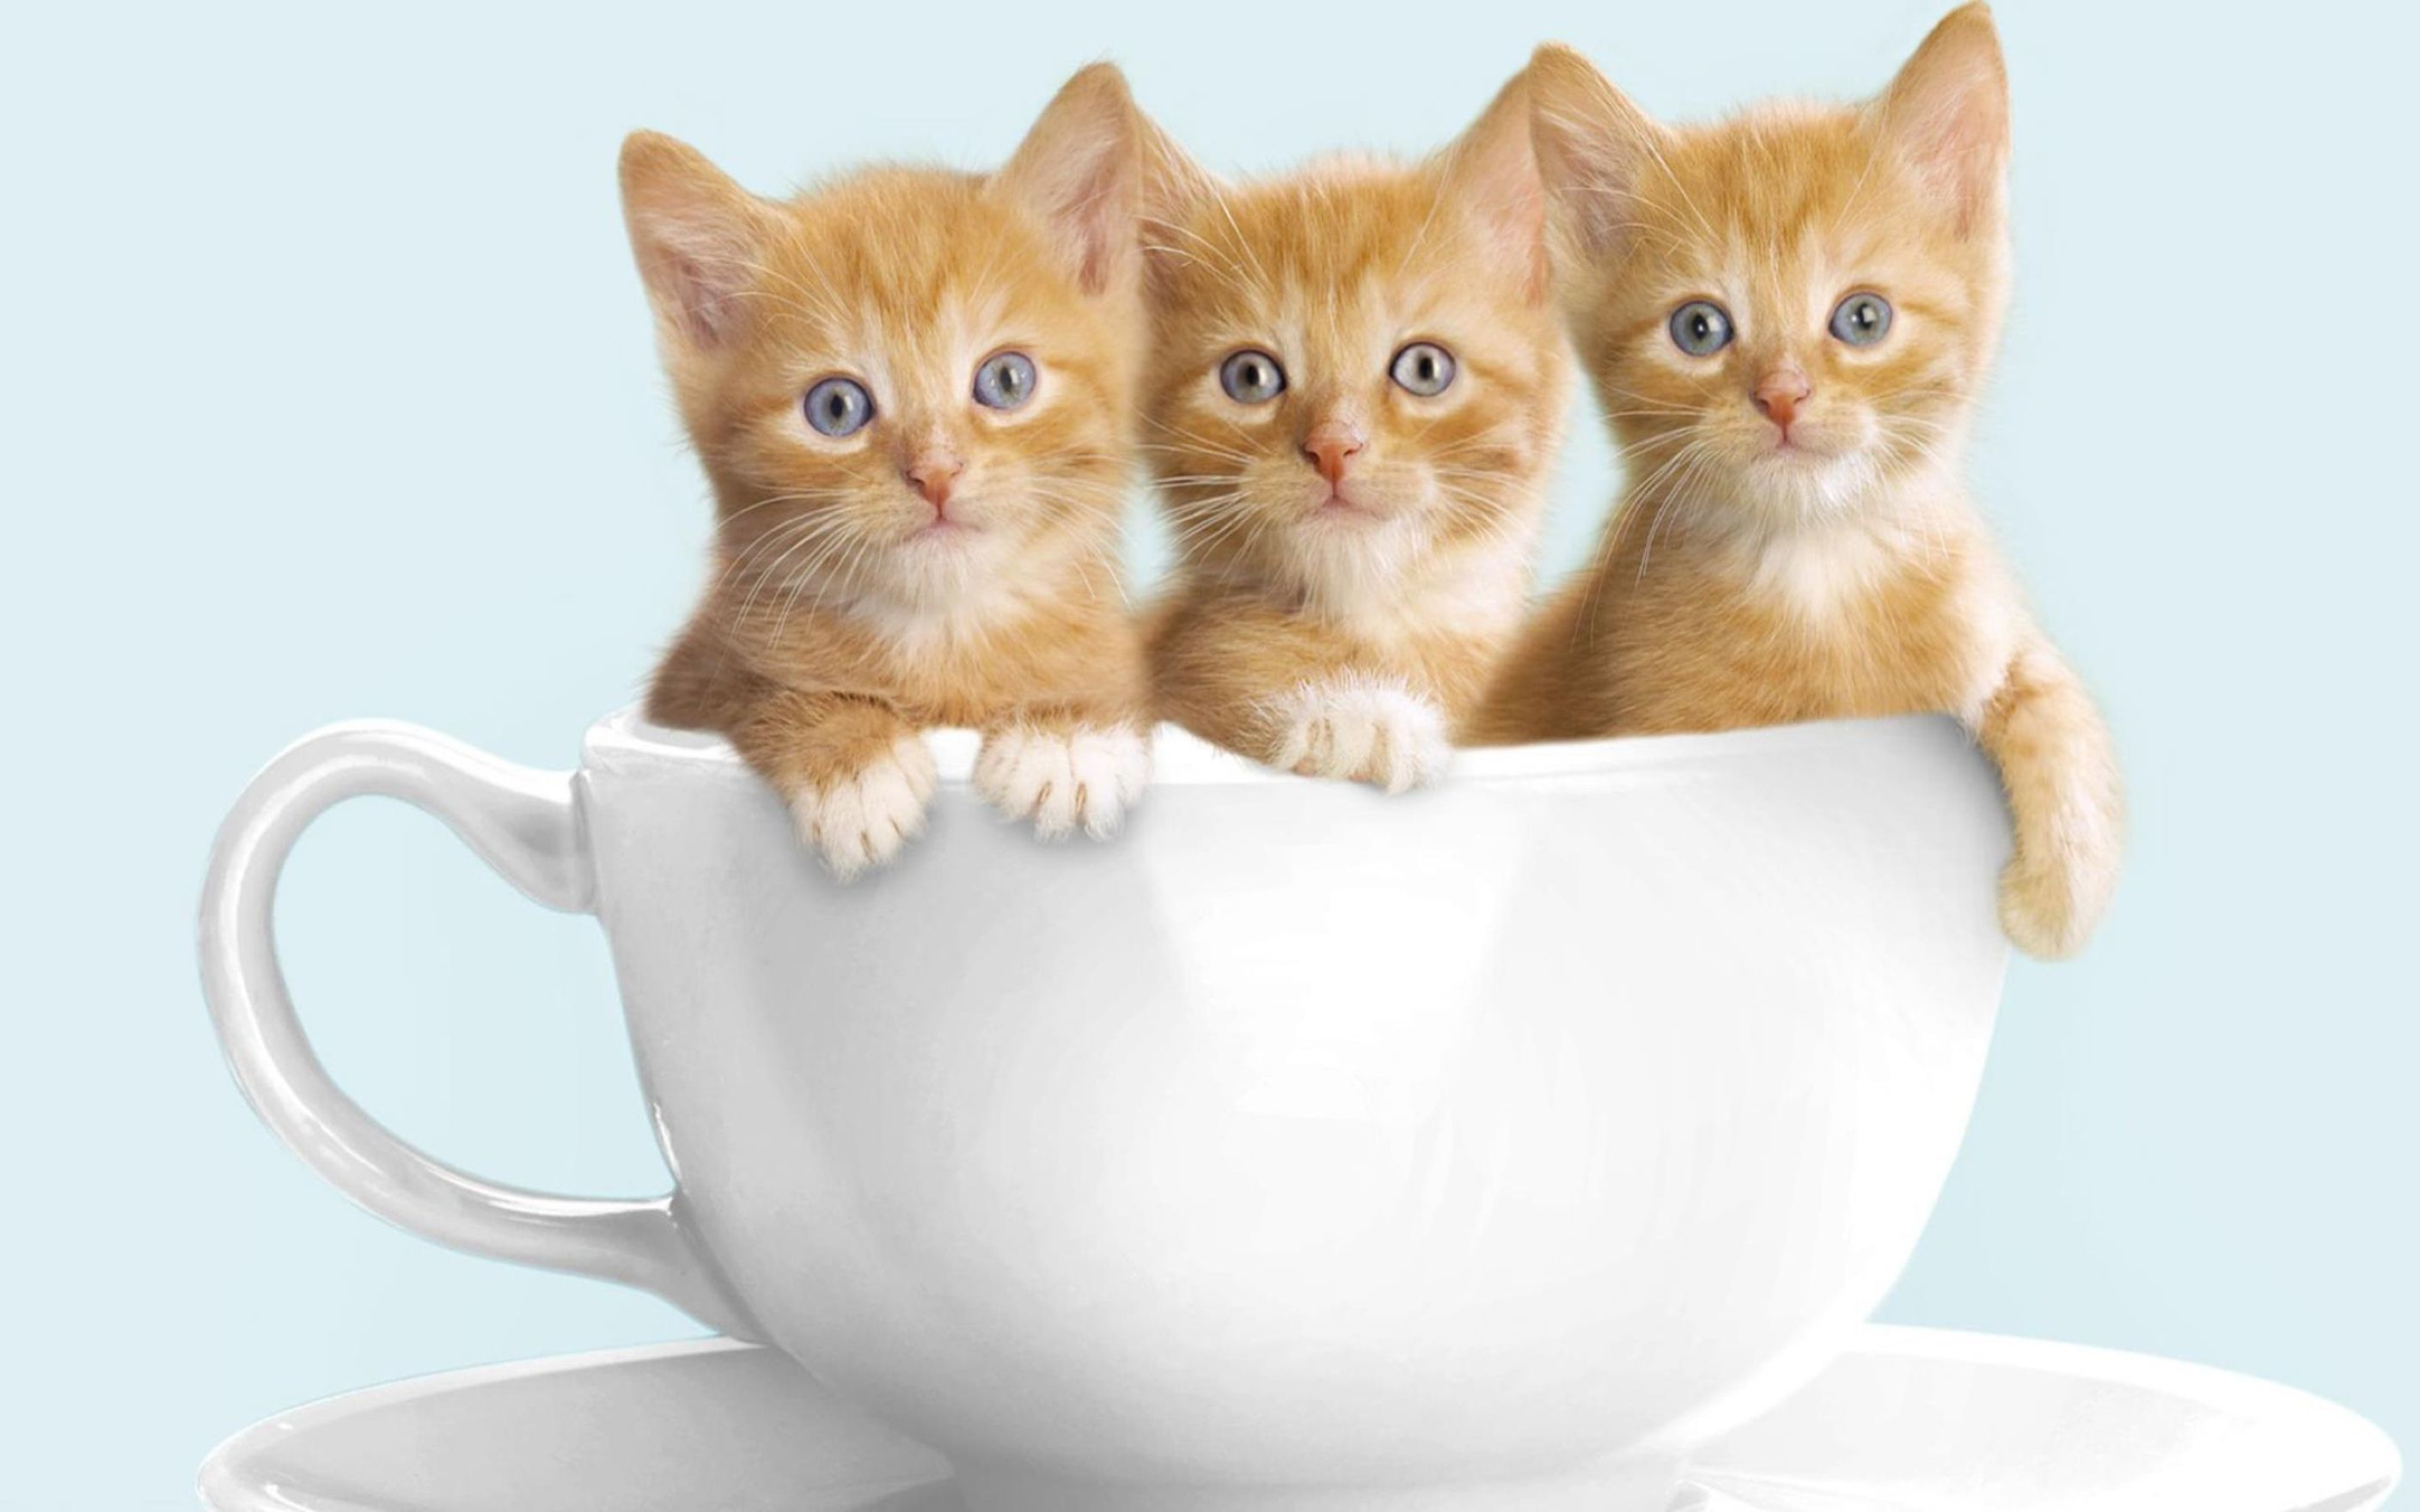 Download free HD Adorable Cute Cats High Definition Wallpaper, image